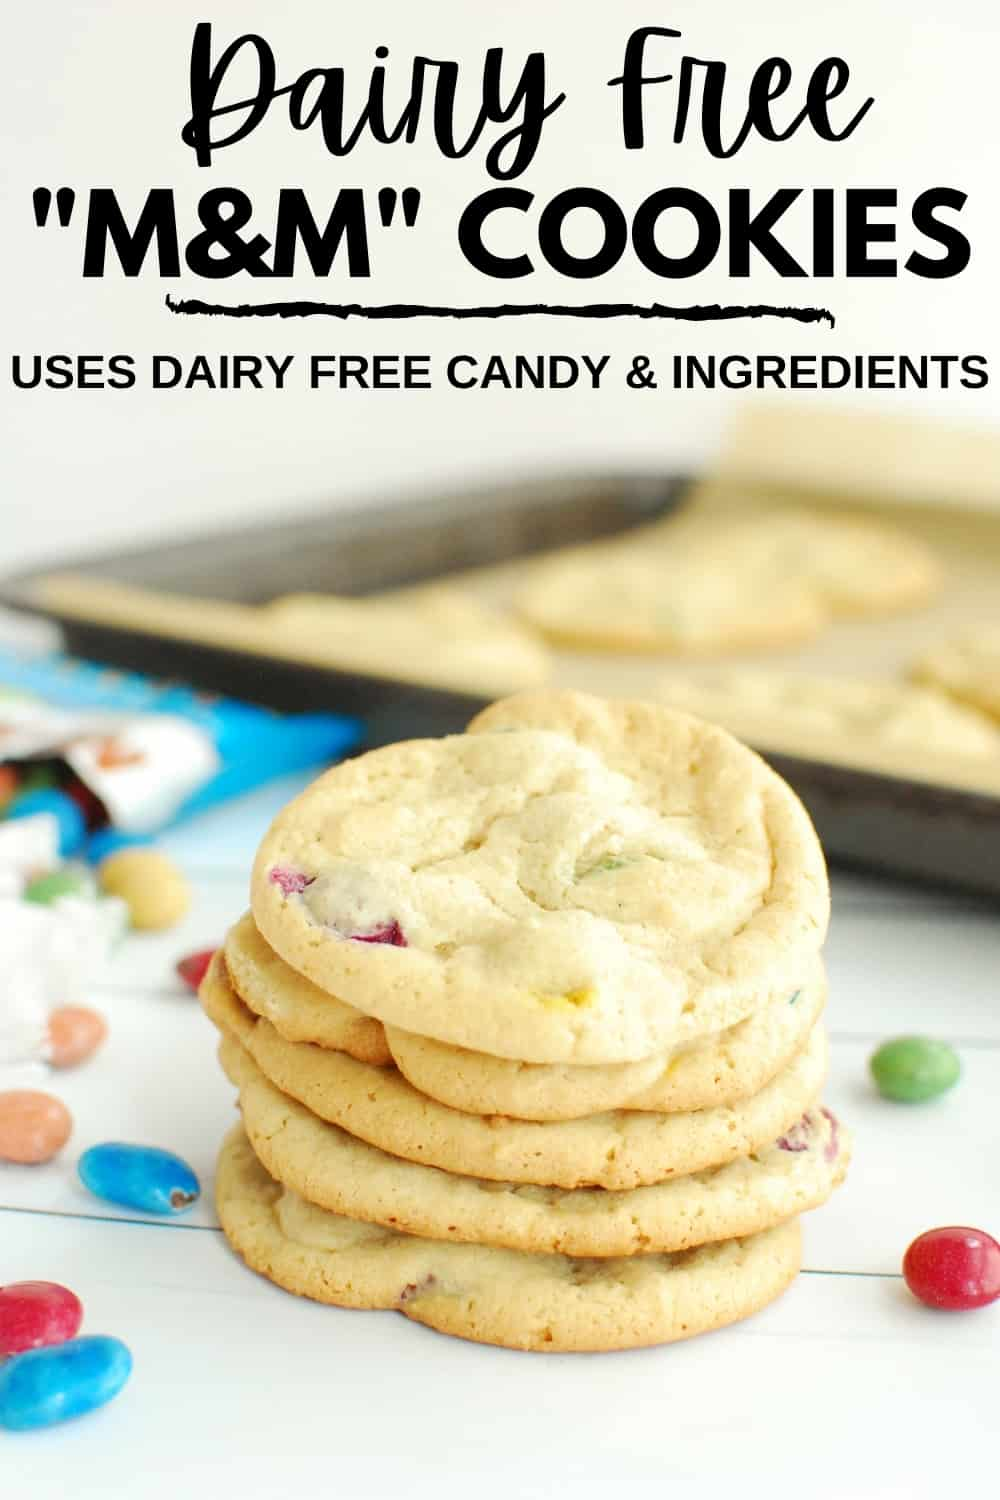 Several dairy free M&M cookies piled on top of each other.